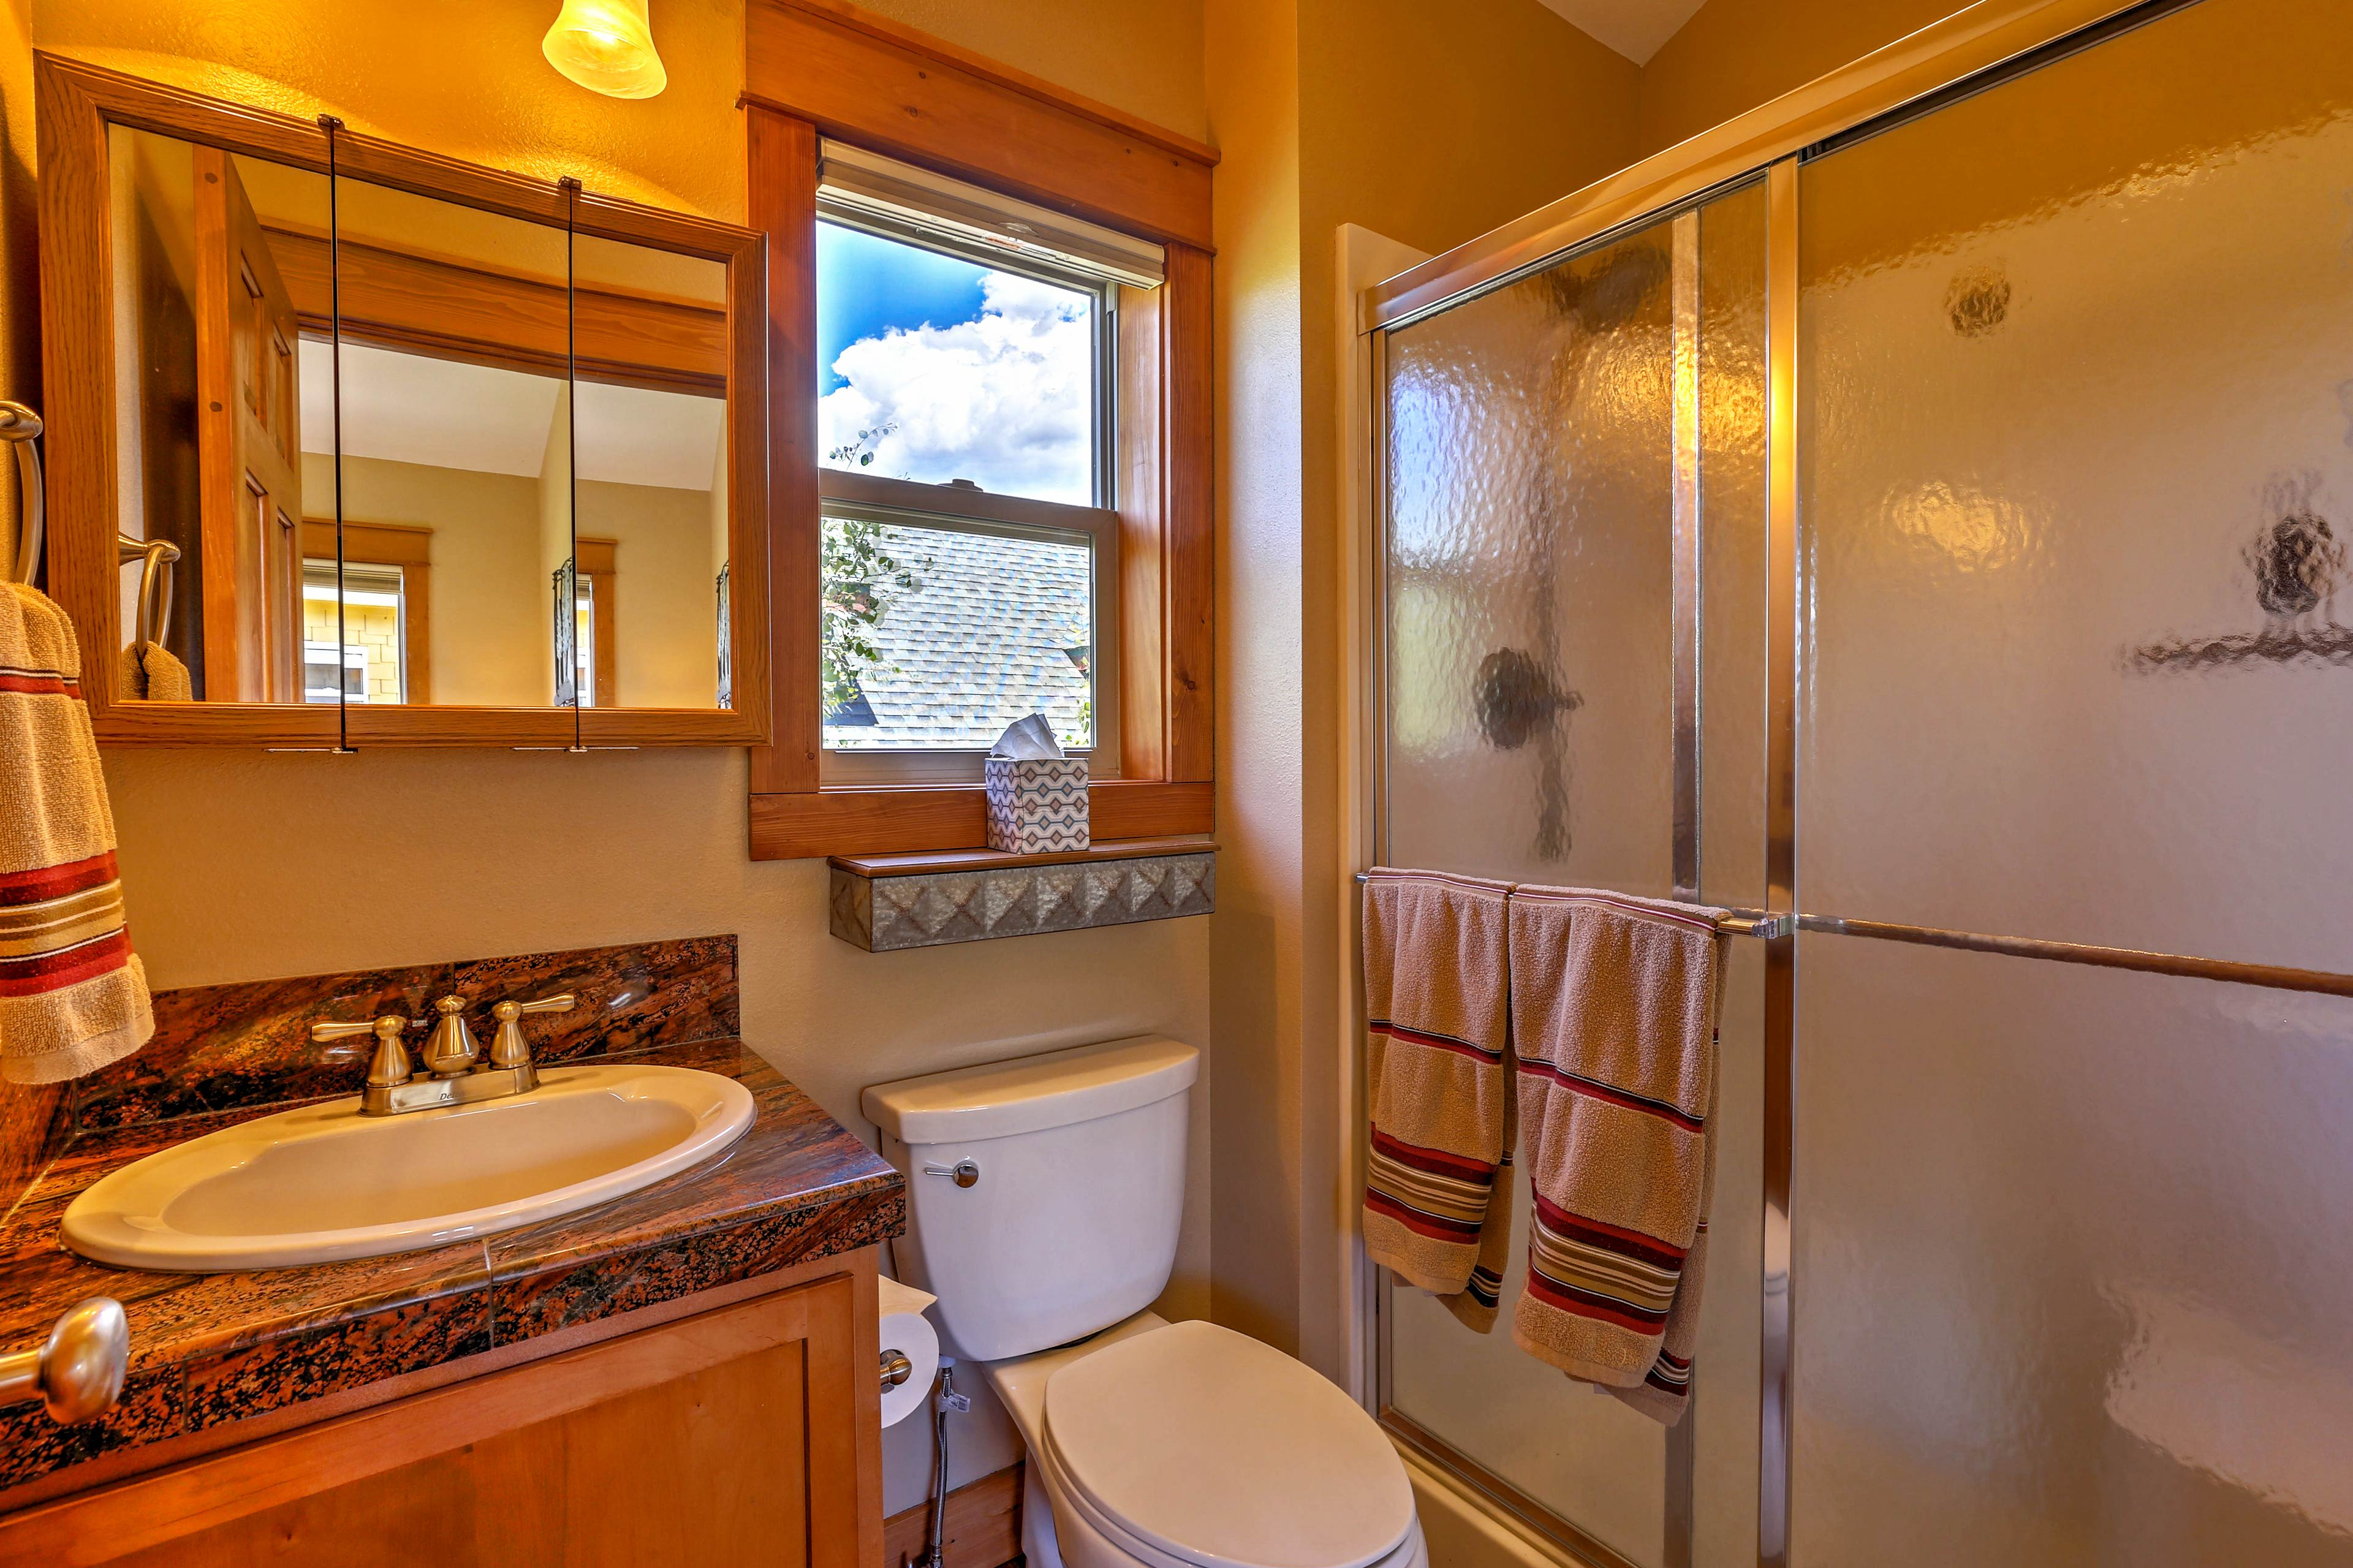 A walk-in shower and tri fold vanity furnish this full bathroom.